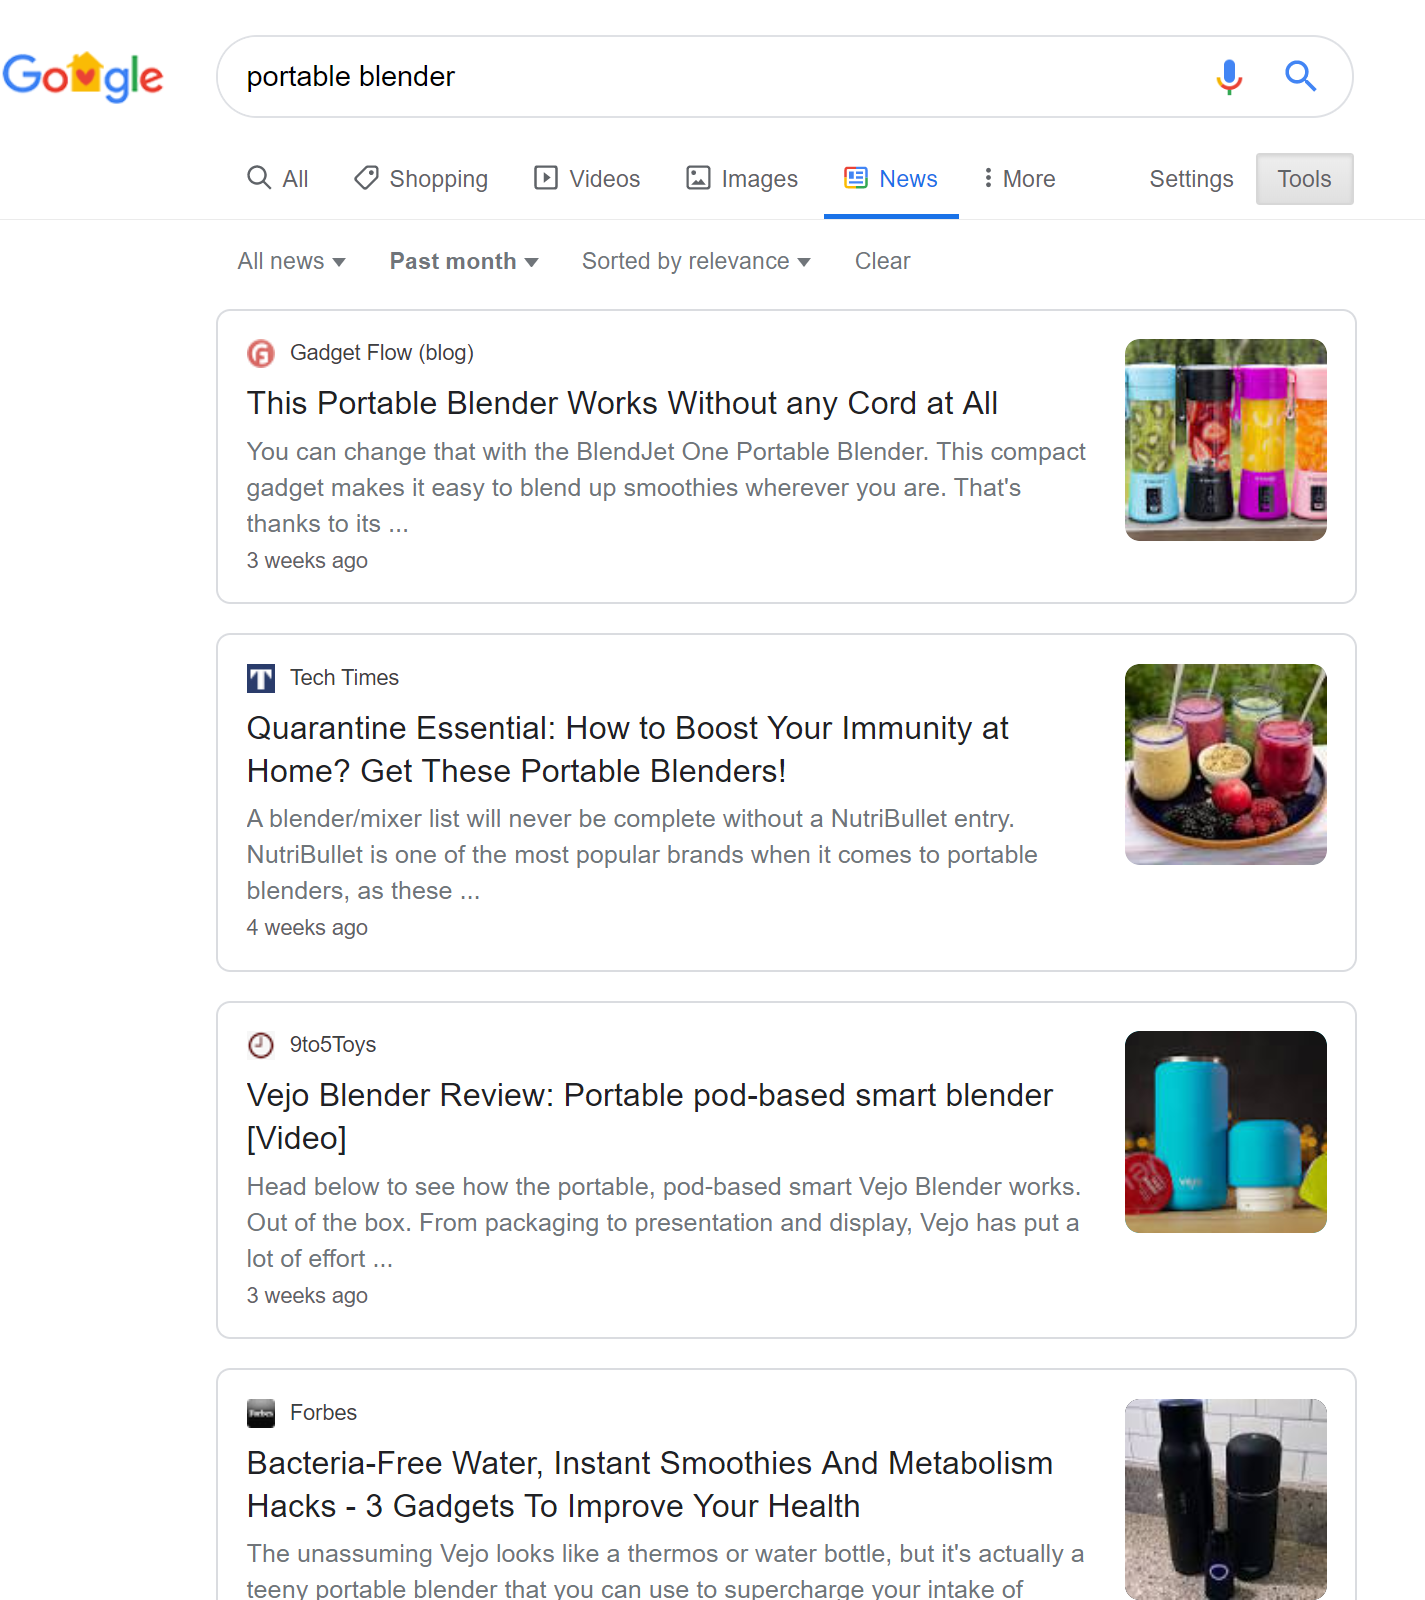 Search for publications on Google to release a press release